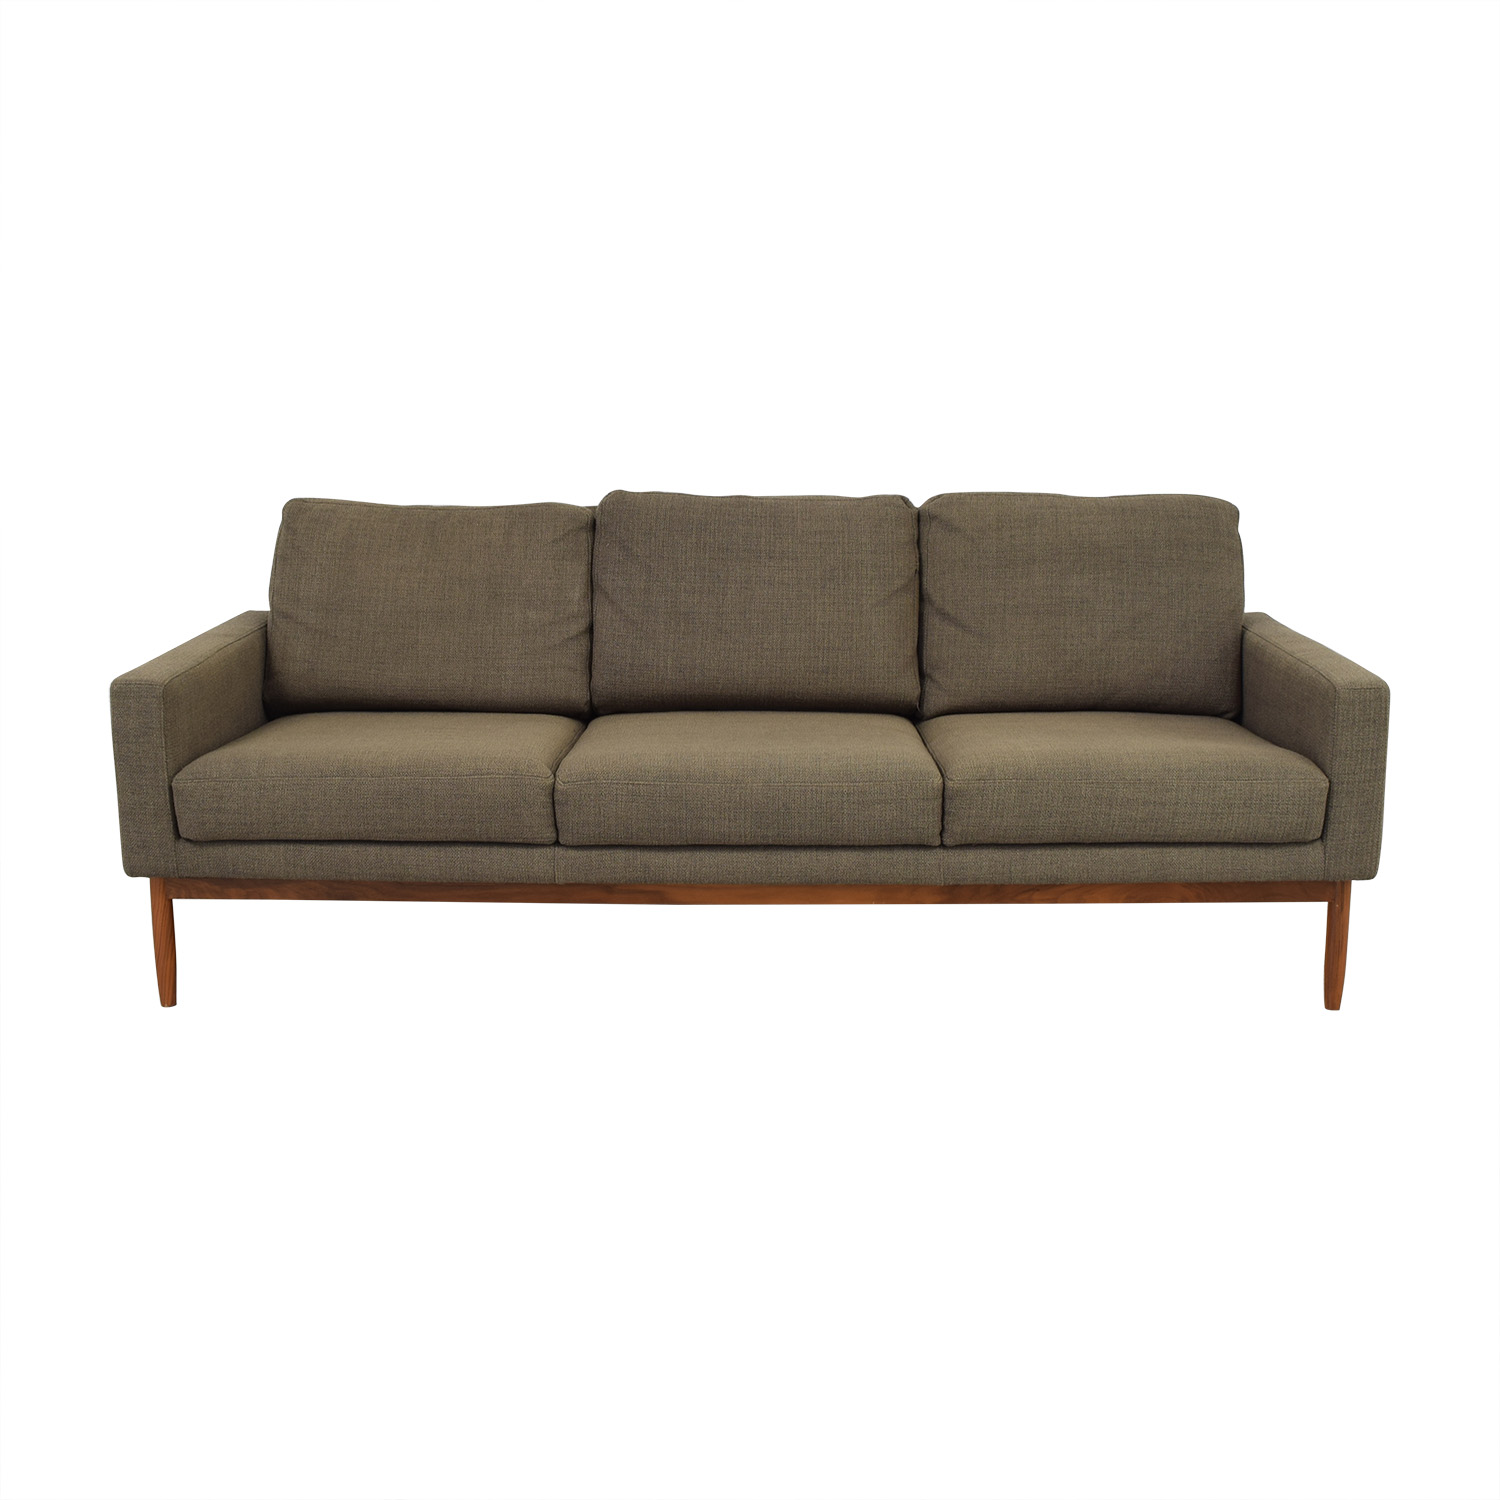 Design Within Reach Design Within Reach Raleigh Sofa nyc